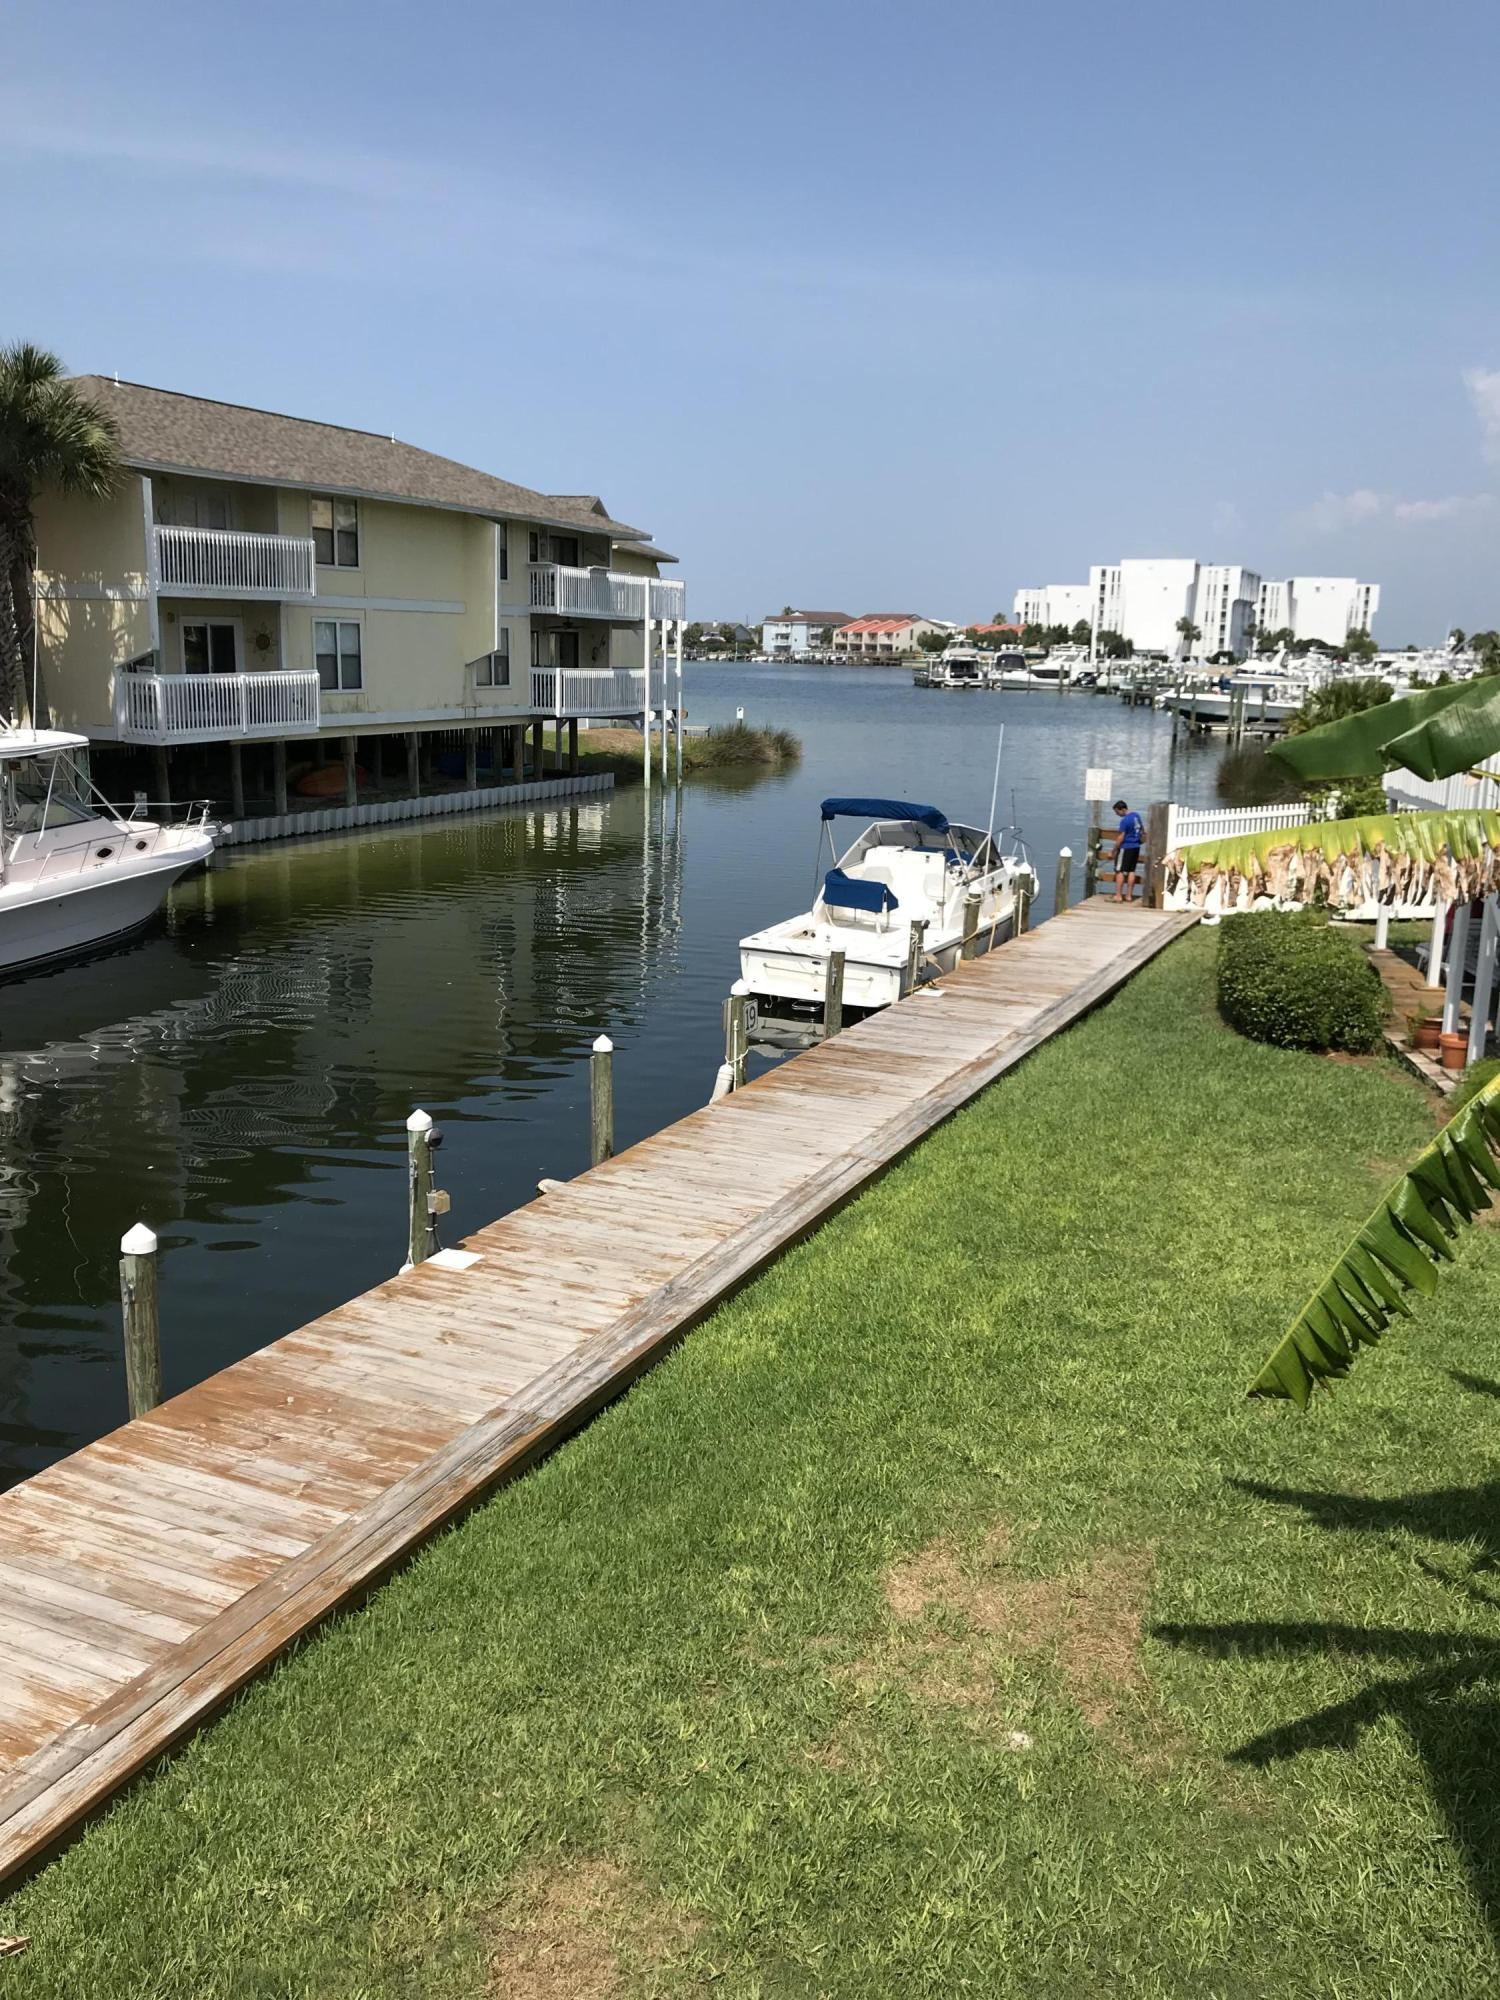 Best location on the canal.  This downstairs unit has a large extended balcony that overlooks the canal and opens directly into the harbor for easy access. Unit has additional window in the living for view directly down the harbor.  Unit has been remodeled with a new bathroom, kitchen and large extended deck.  The rental income on this unit is unbelievable.  Enjoy all that Sandpiper Cove has to offer 1100 Deeded feet on the Gulf of Mexico, have a quick lunch at Rick's Crab Trap at the beach,  5 swimming pools (2 heated), 3 hot tubs, 6 tennis courts, 3 pickle ball marked courts, 9 hole par 3 Gulf Course, and always have dinner at the on site restaurant Louisiana Lagniappe.